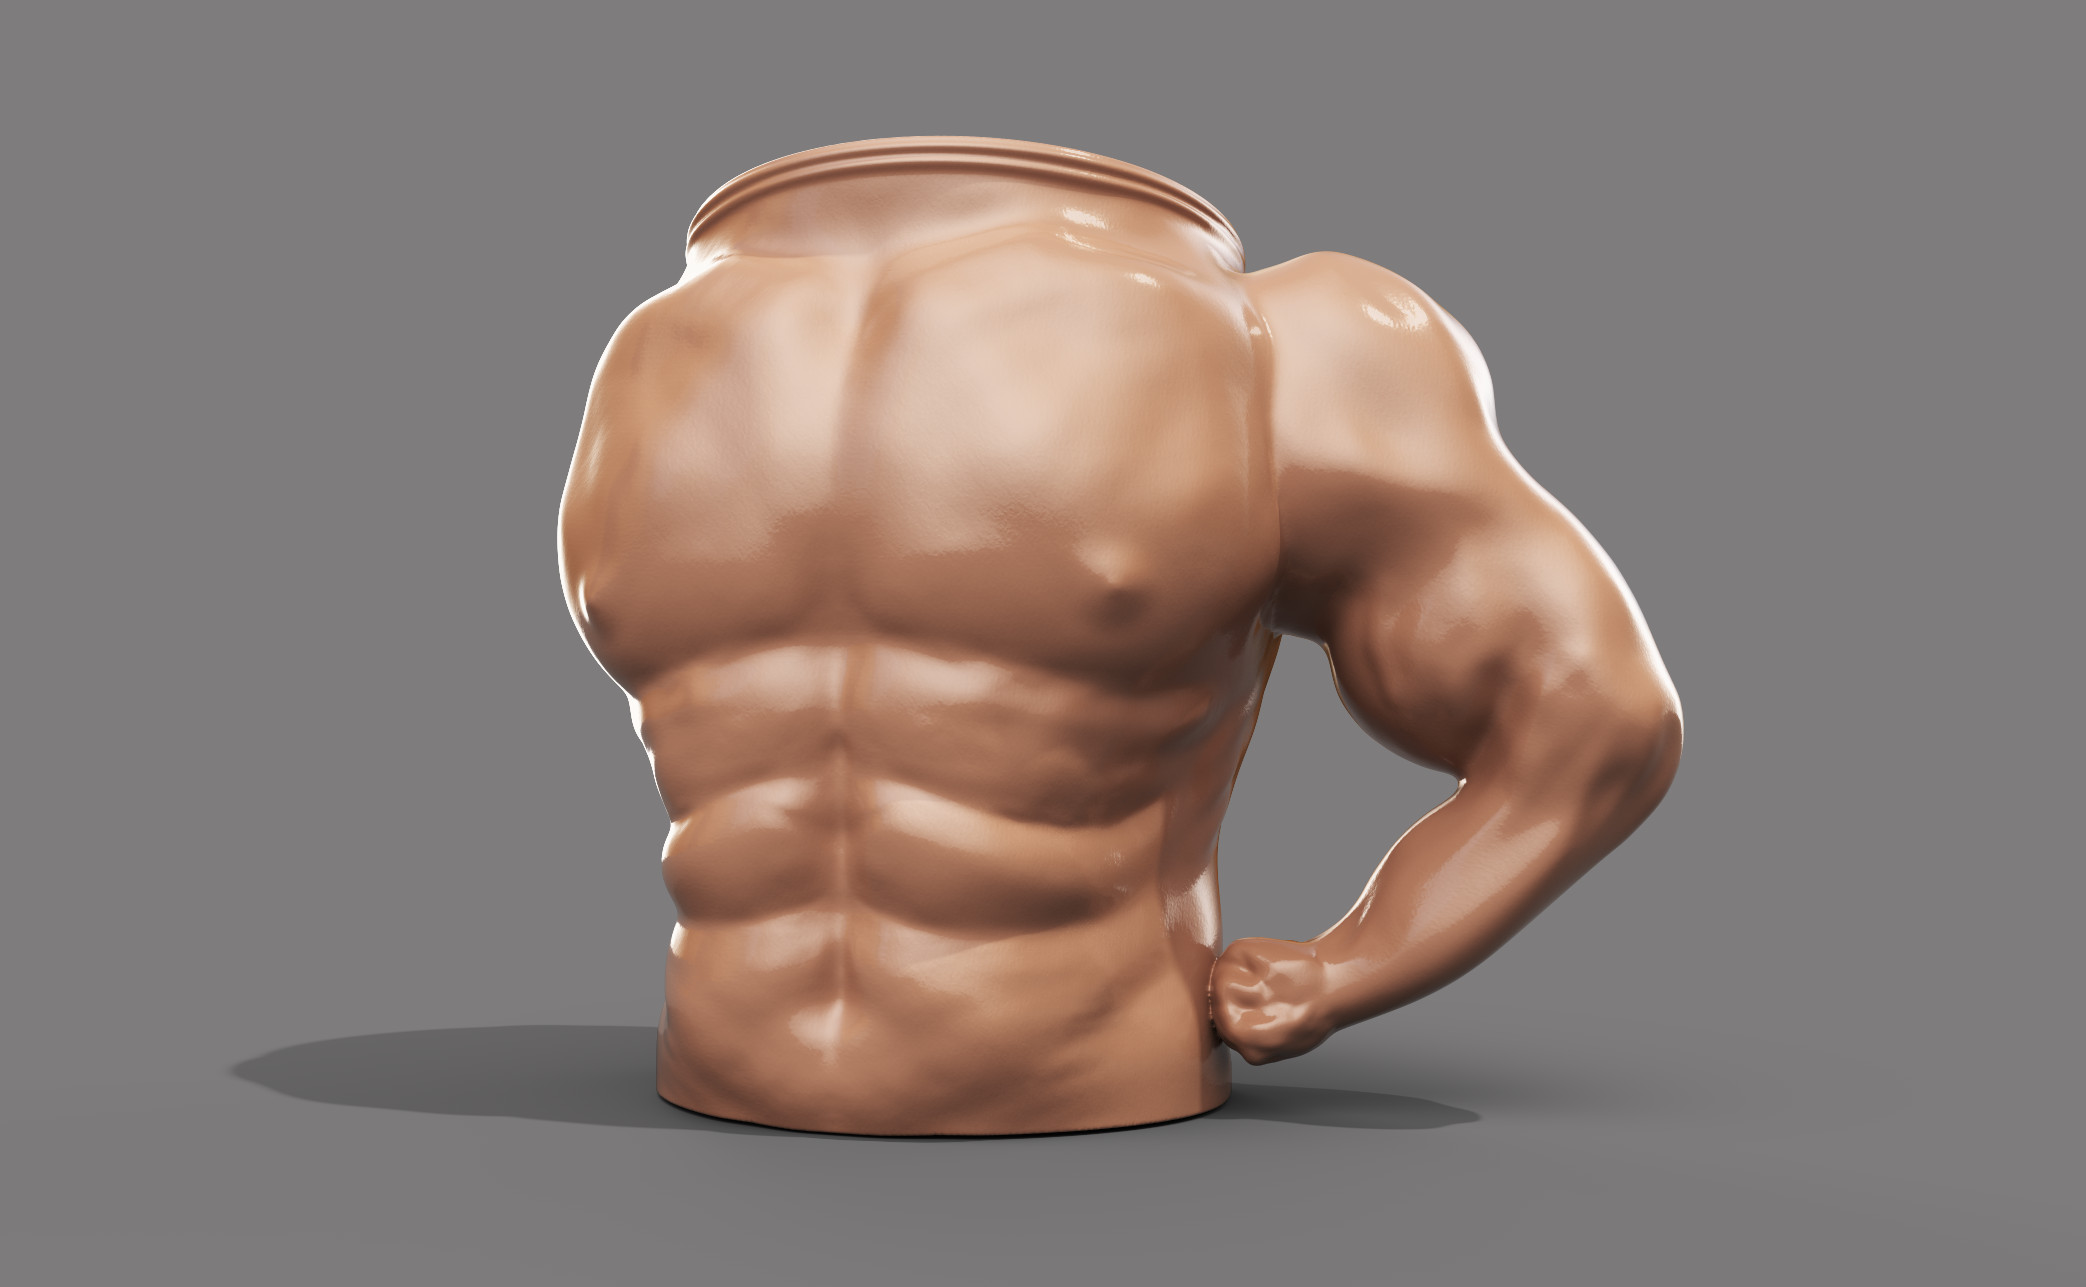 Final render of the Muscle Mug using iRay and composited in Photoshop. The mug is meant to hit that uncanny valley to throw off the player when they discover the prop.